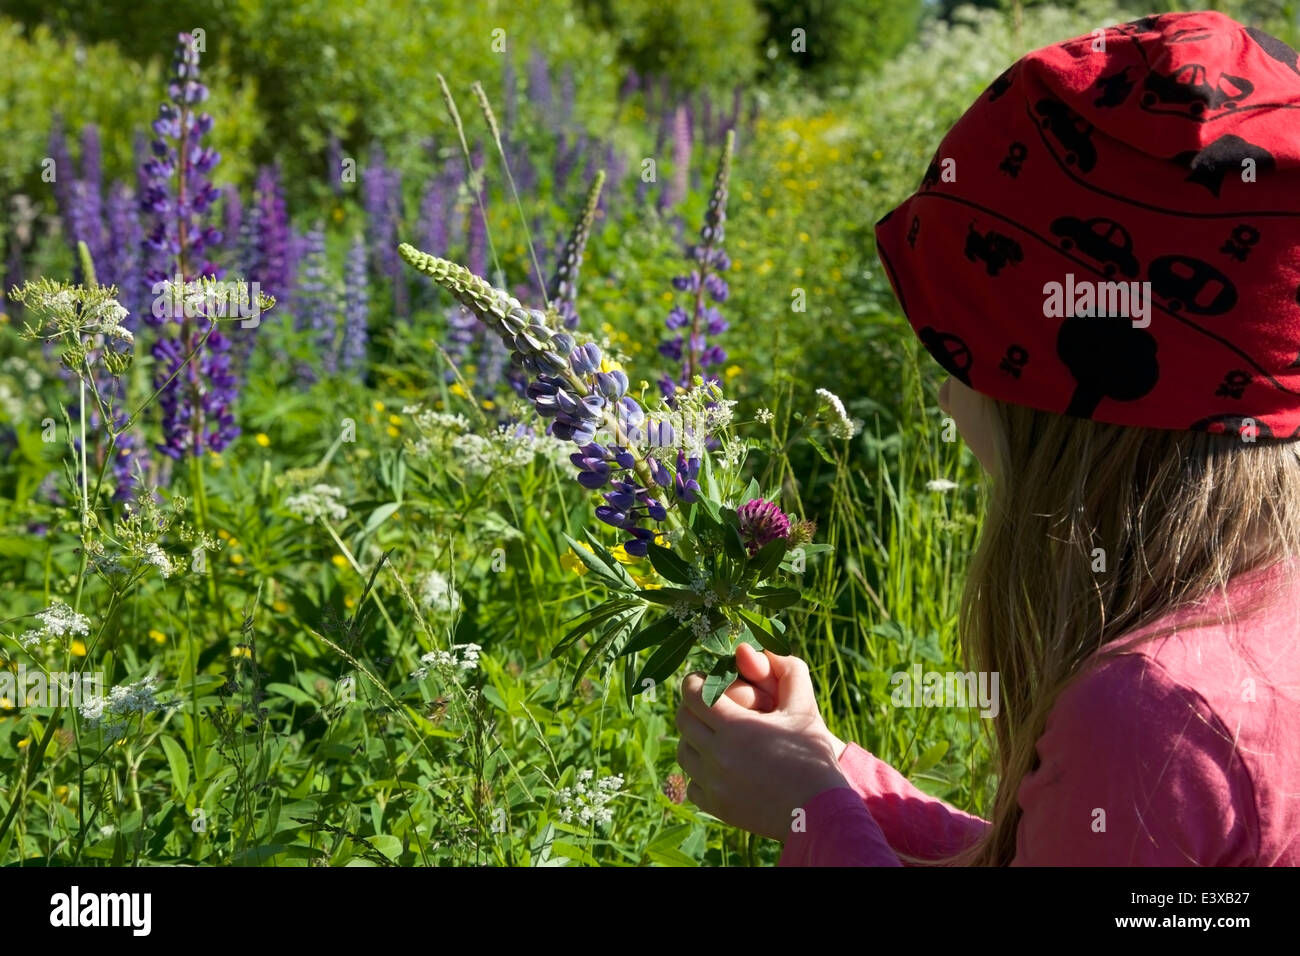 A bouquet of summer flowers in girl's hands in summer in Finland - Stock Image